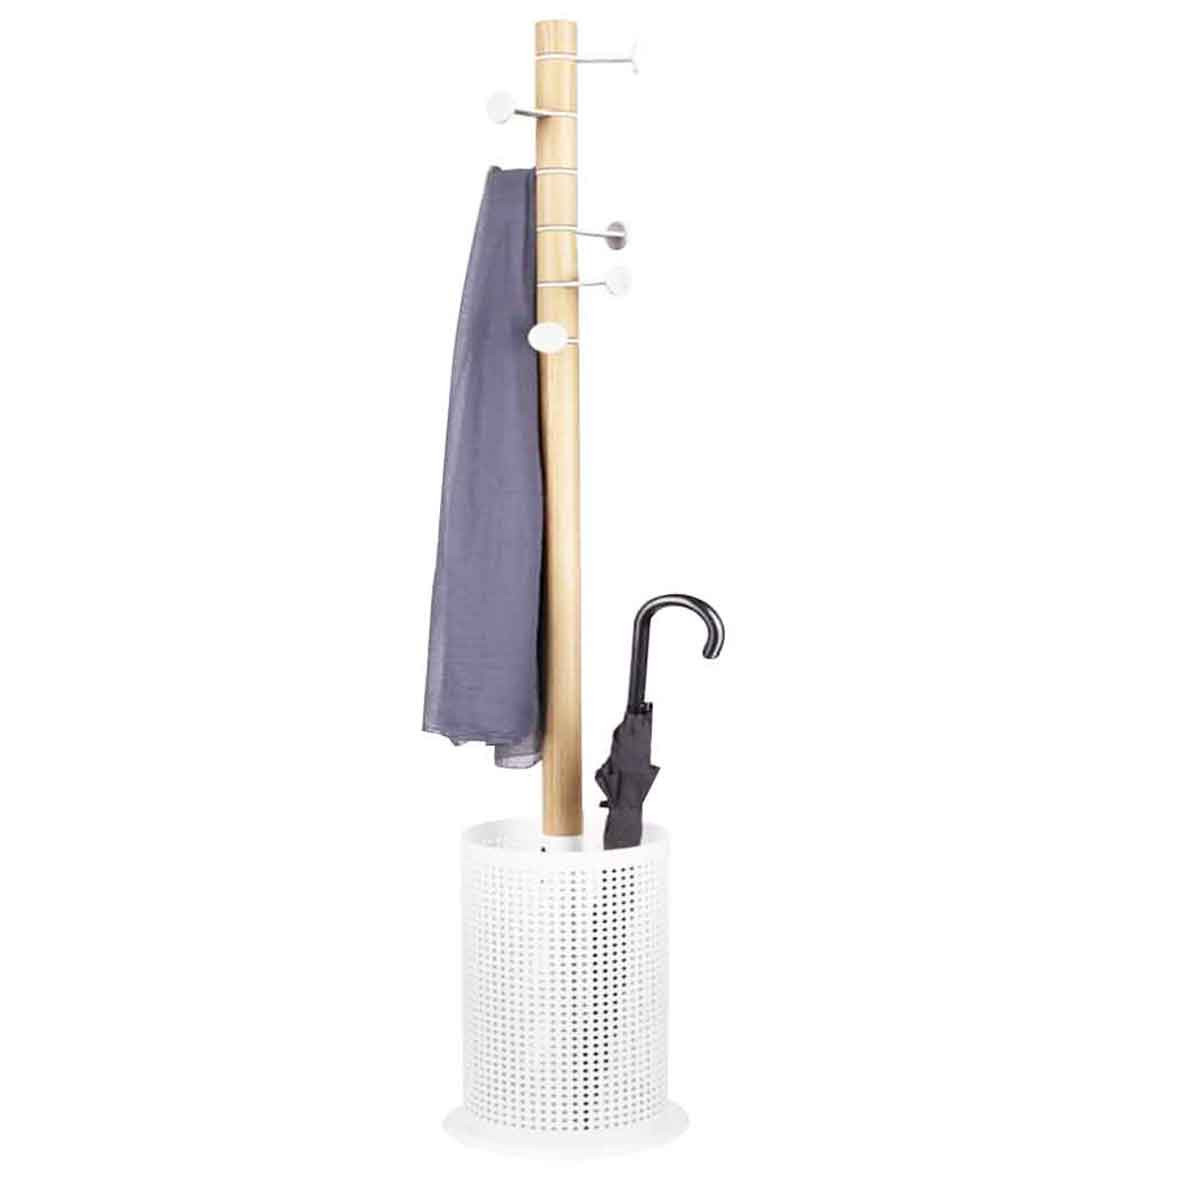 porte manteau porte parapluie bois et m tal blanc. Black Bedroom Furniture Sets. Home Design Ideas